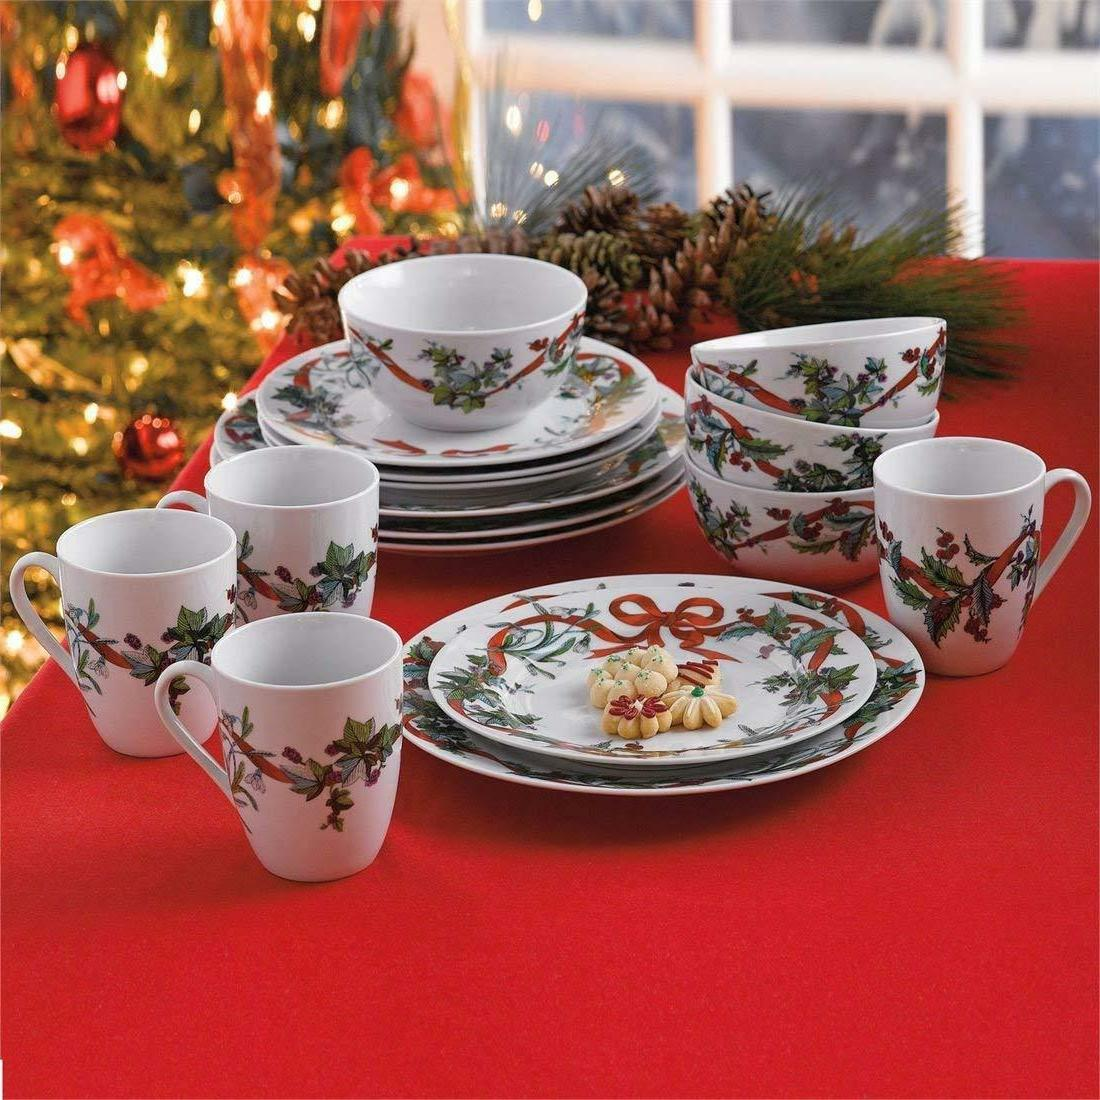 Christmas Dinnerware Set Service for 4 with Holiday Decorate